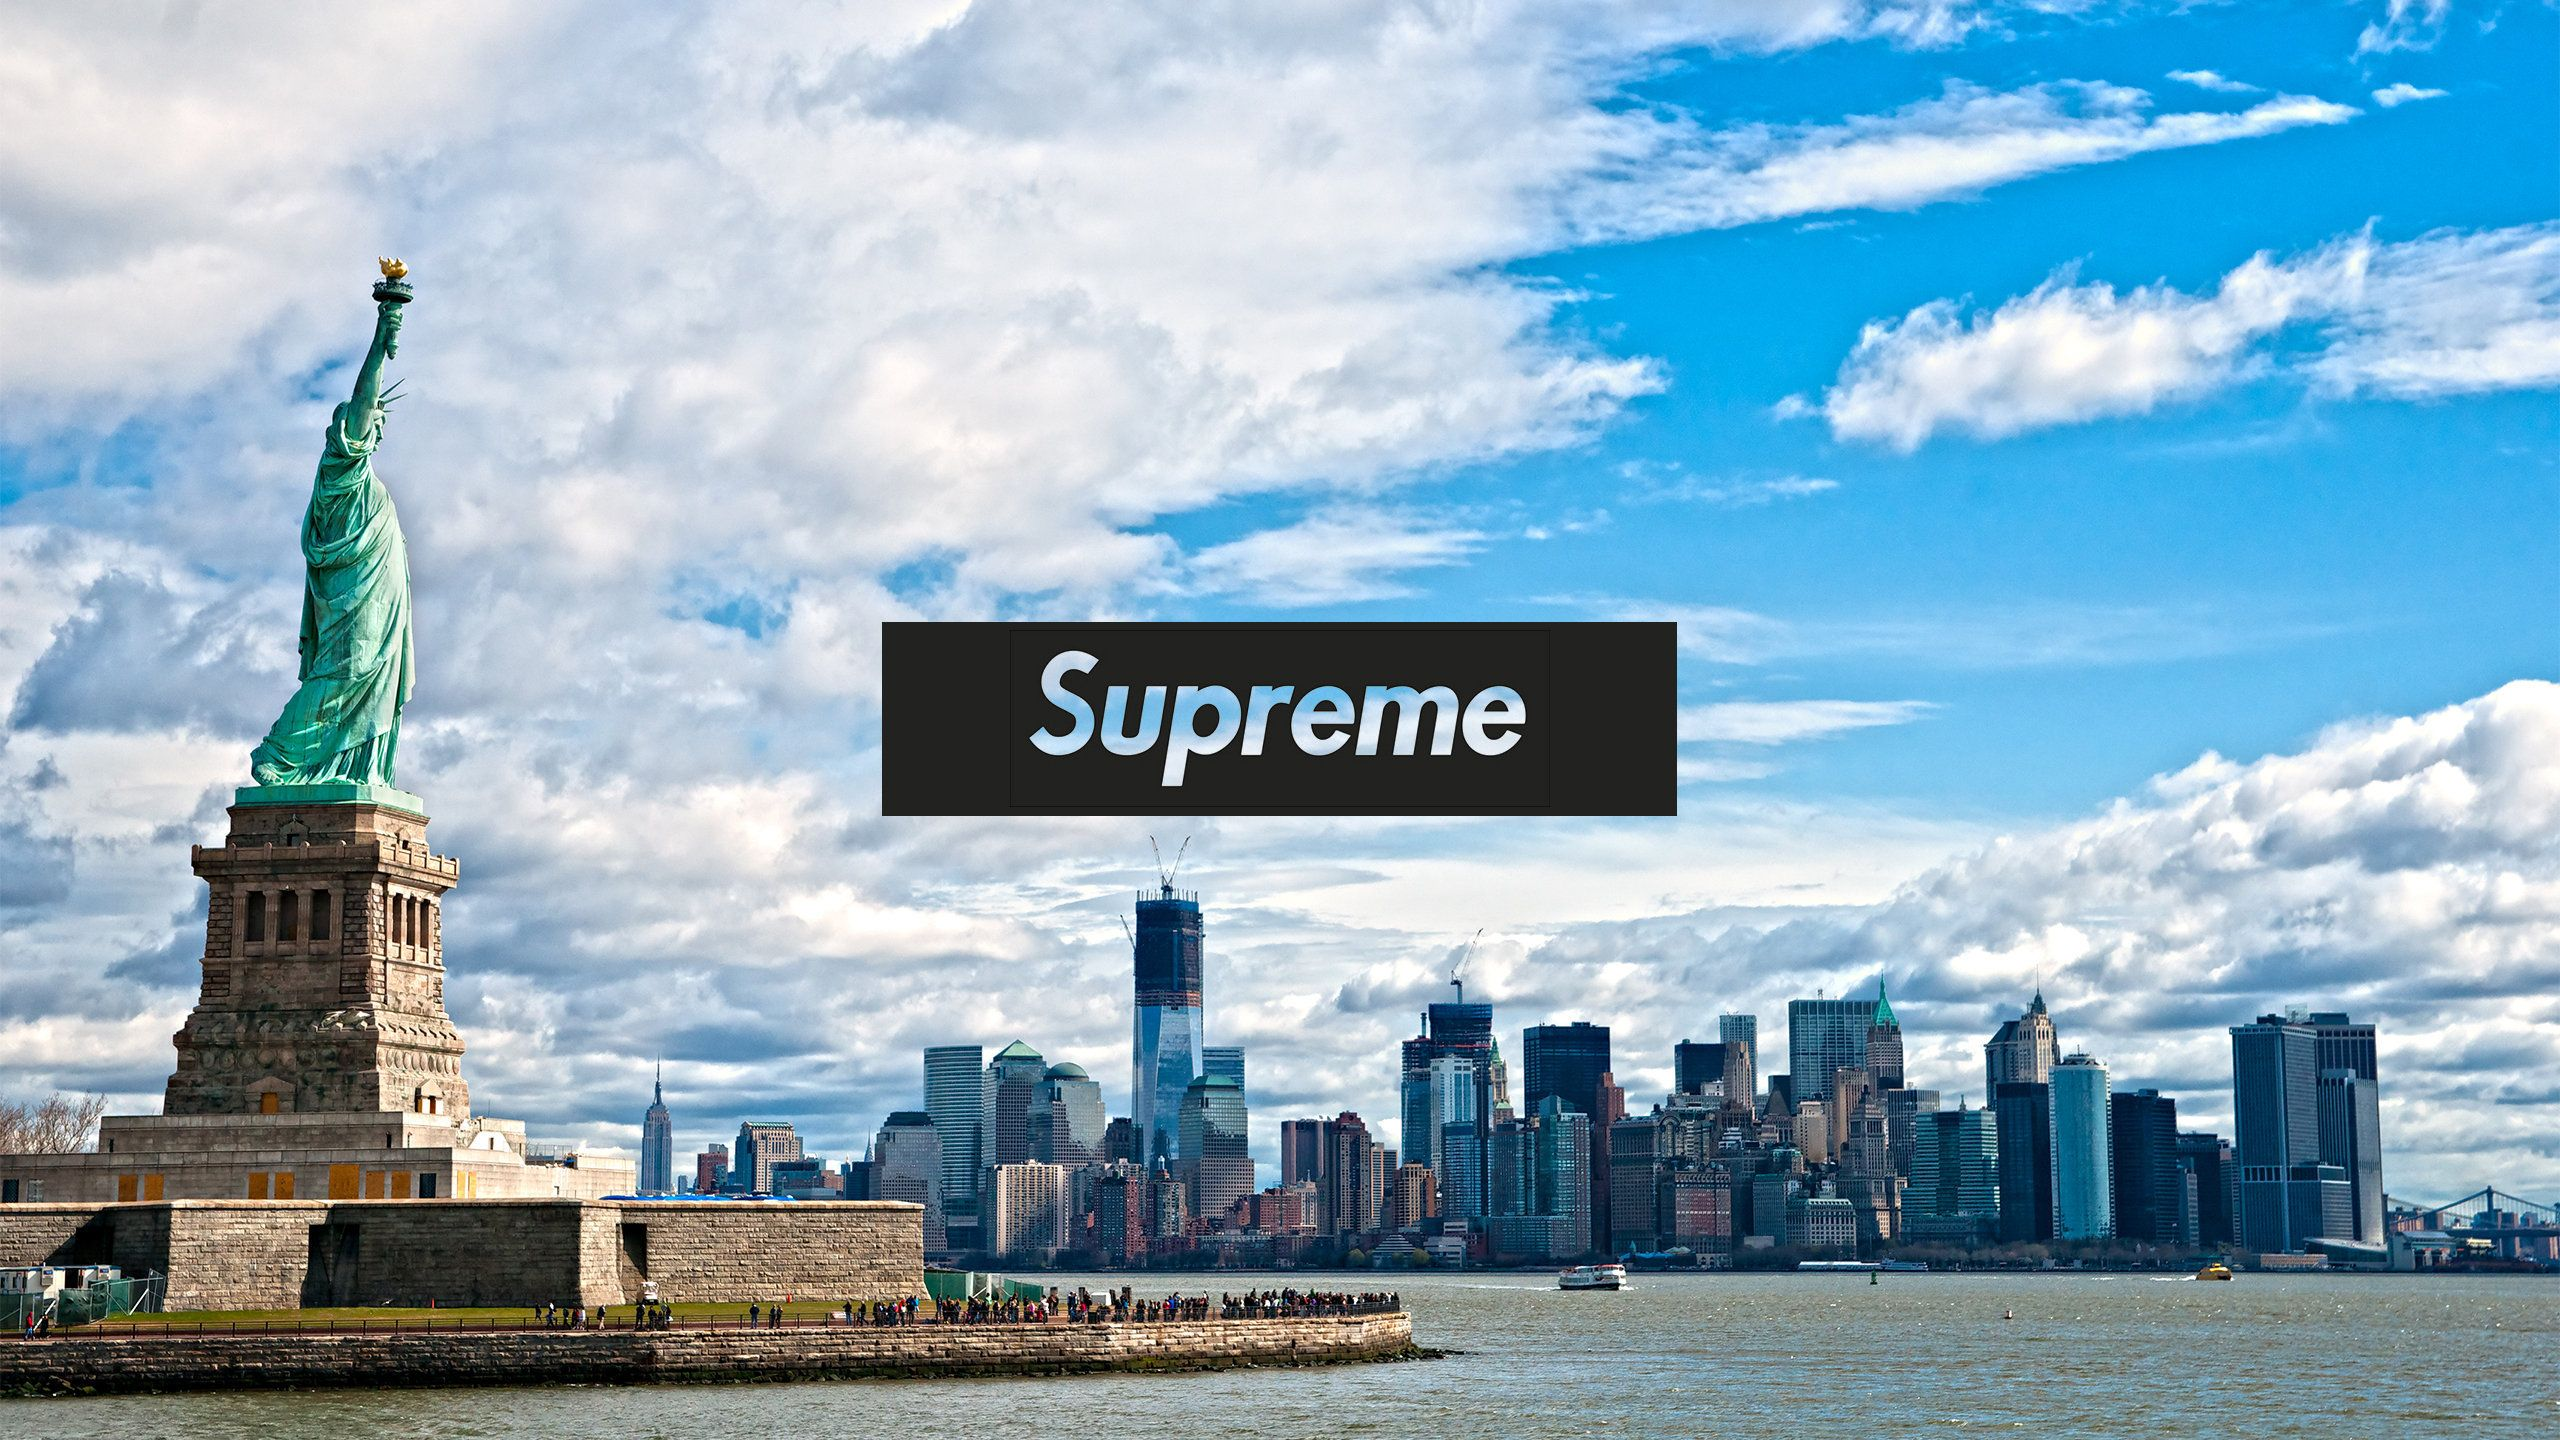 Cool Wallpapers For Pc Supreme